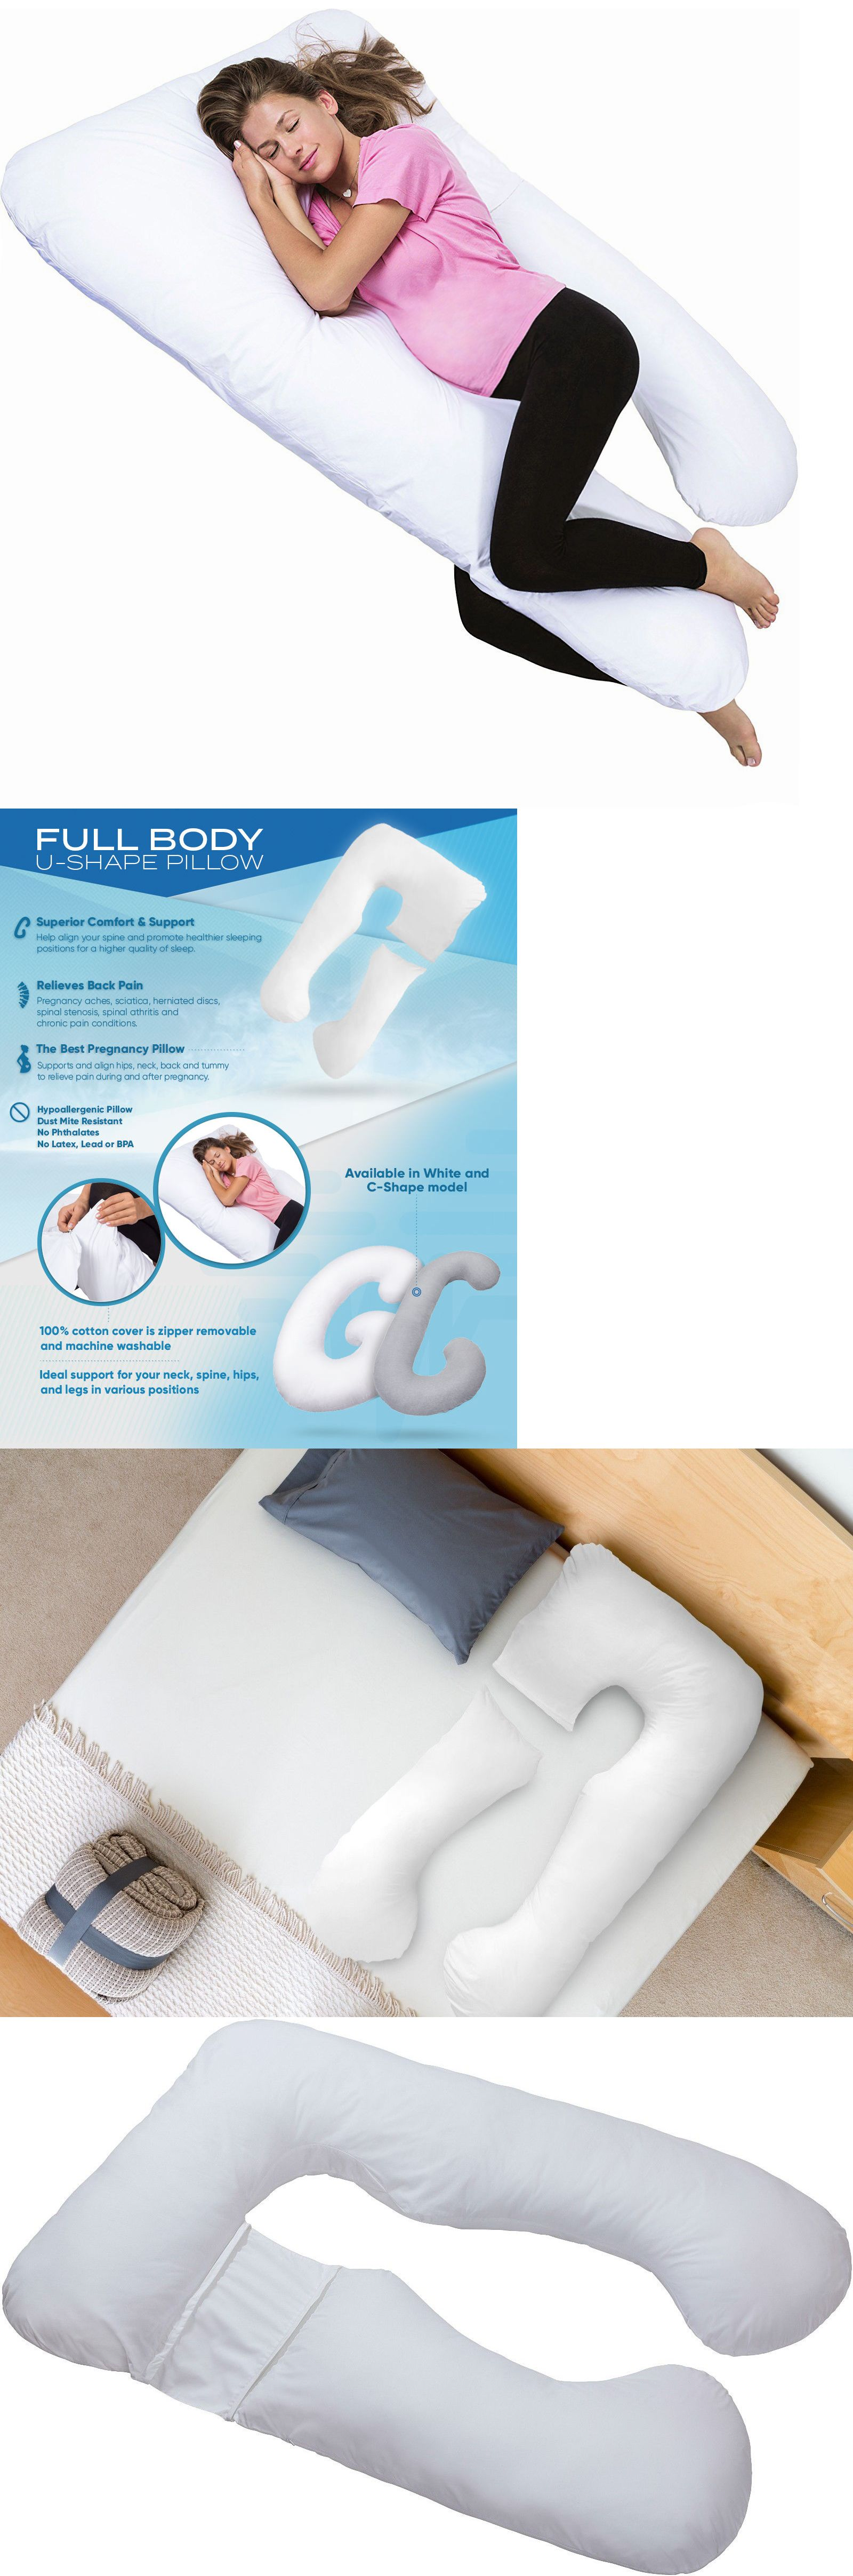 Other Sleeping Aids: Pharmedoc Full Body Pregnancy Pillow - U Shaped Maternity Support Pillow -> BUY IT NOW ONLY: $31.96 on eBay!